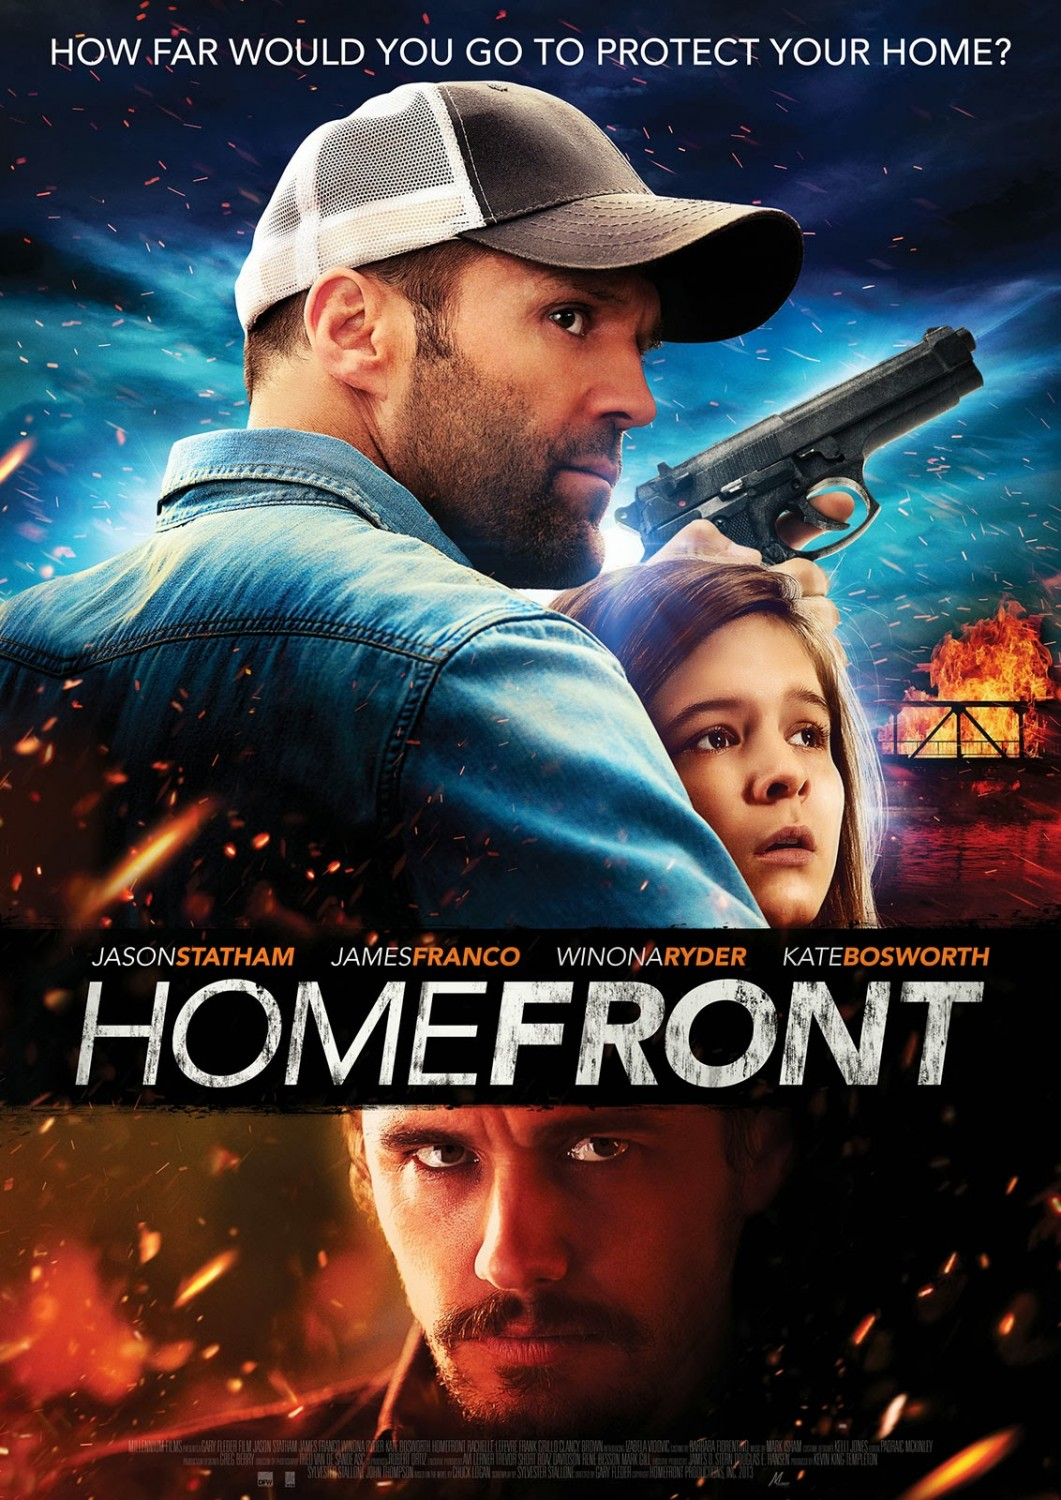 Homefront-Official Poster Banner PROMO POSTER-30SETEMBRO2013